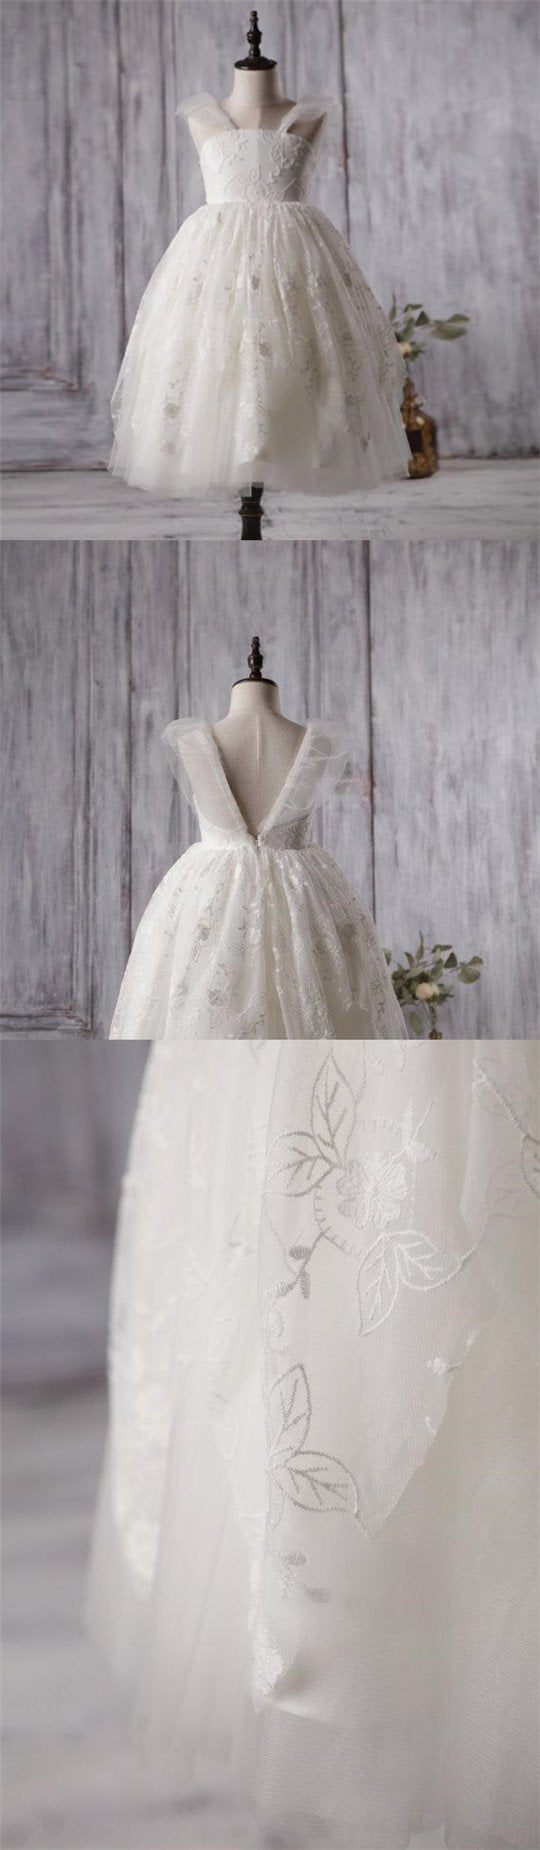 bc5fbe9f27c Ivory Cute Lace Tulle Flower Girl Dresses